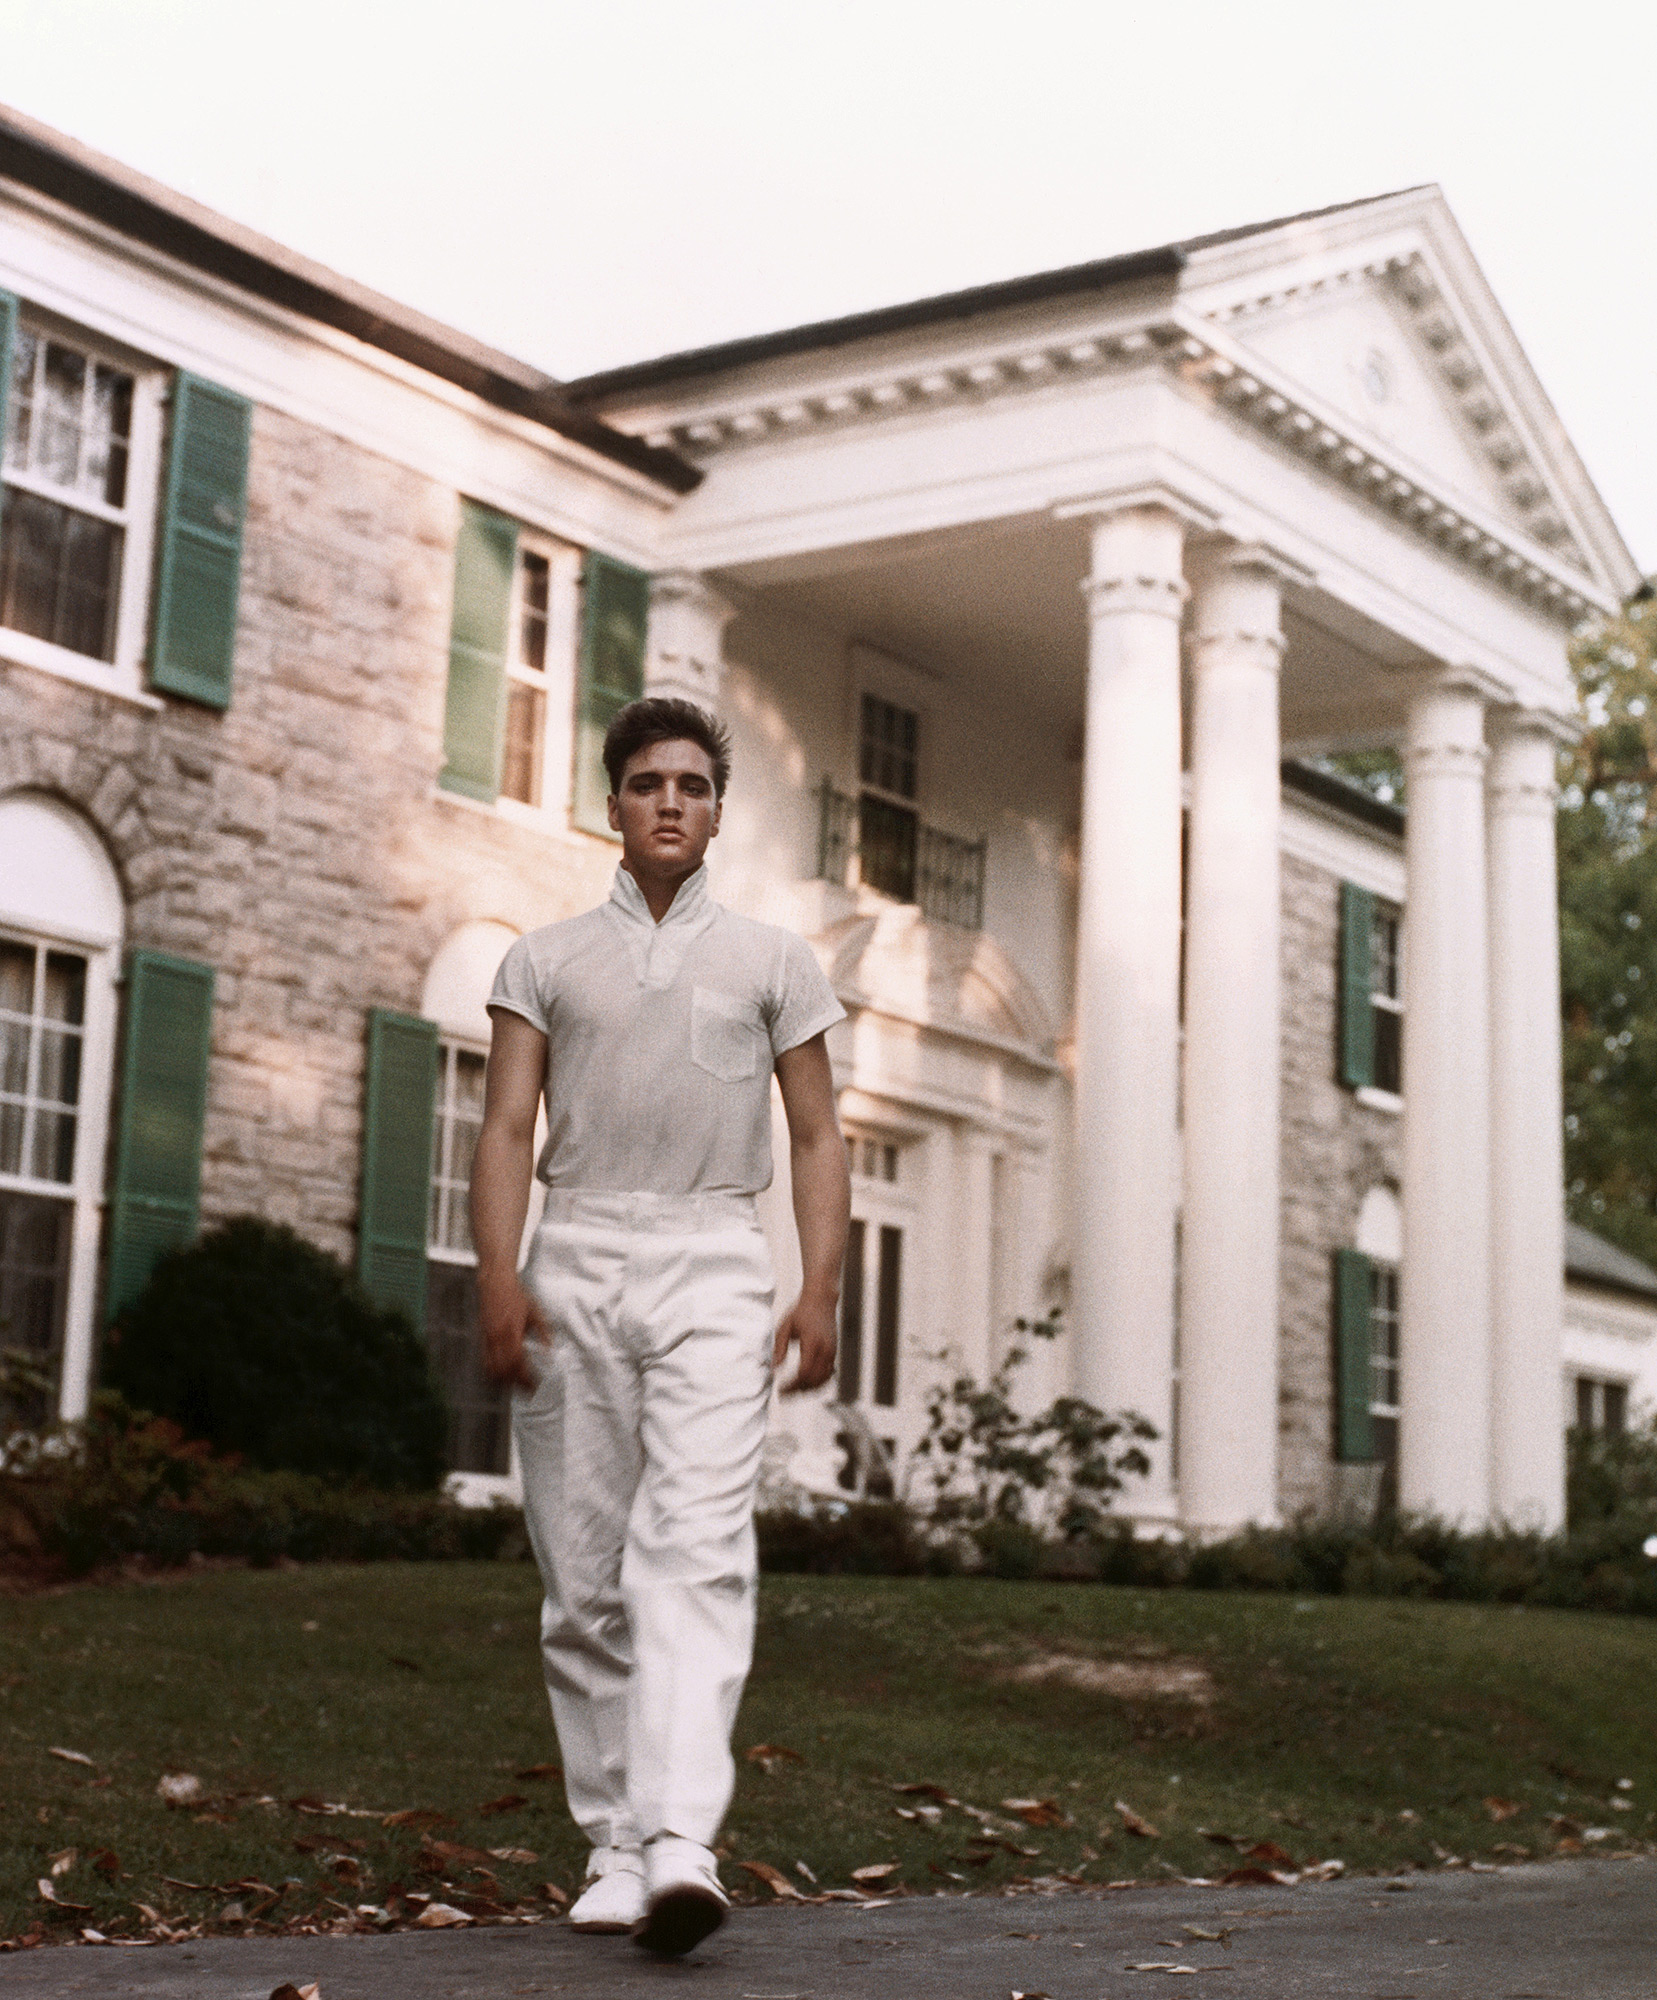 Elvis Presley at Graceland